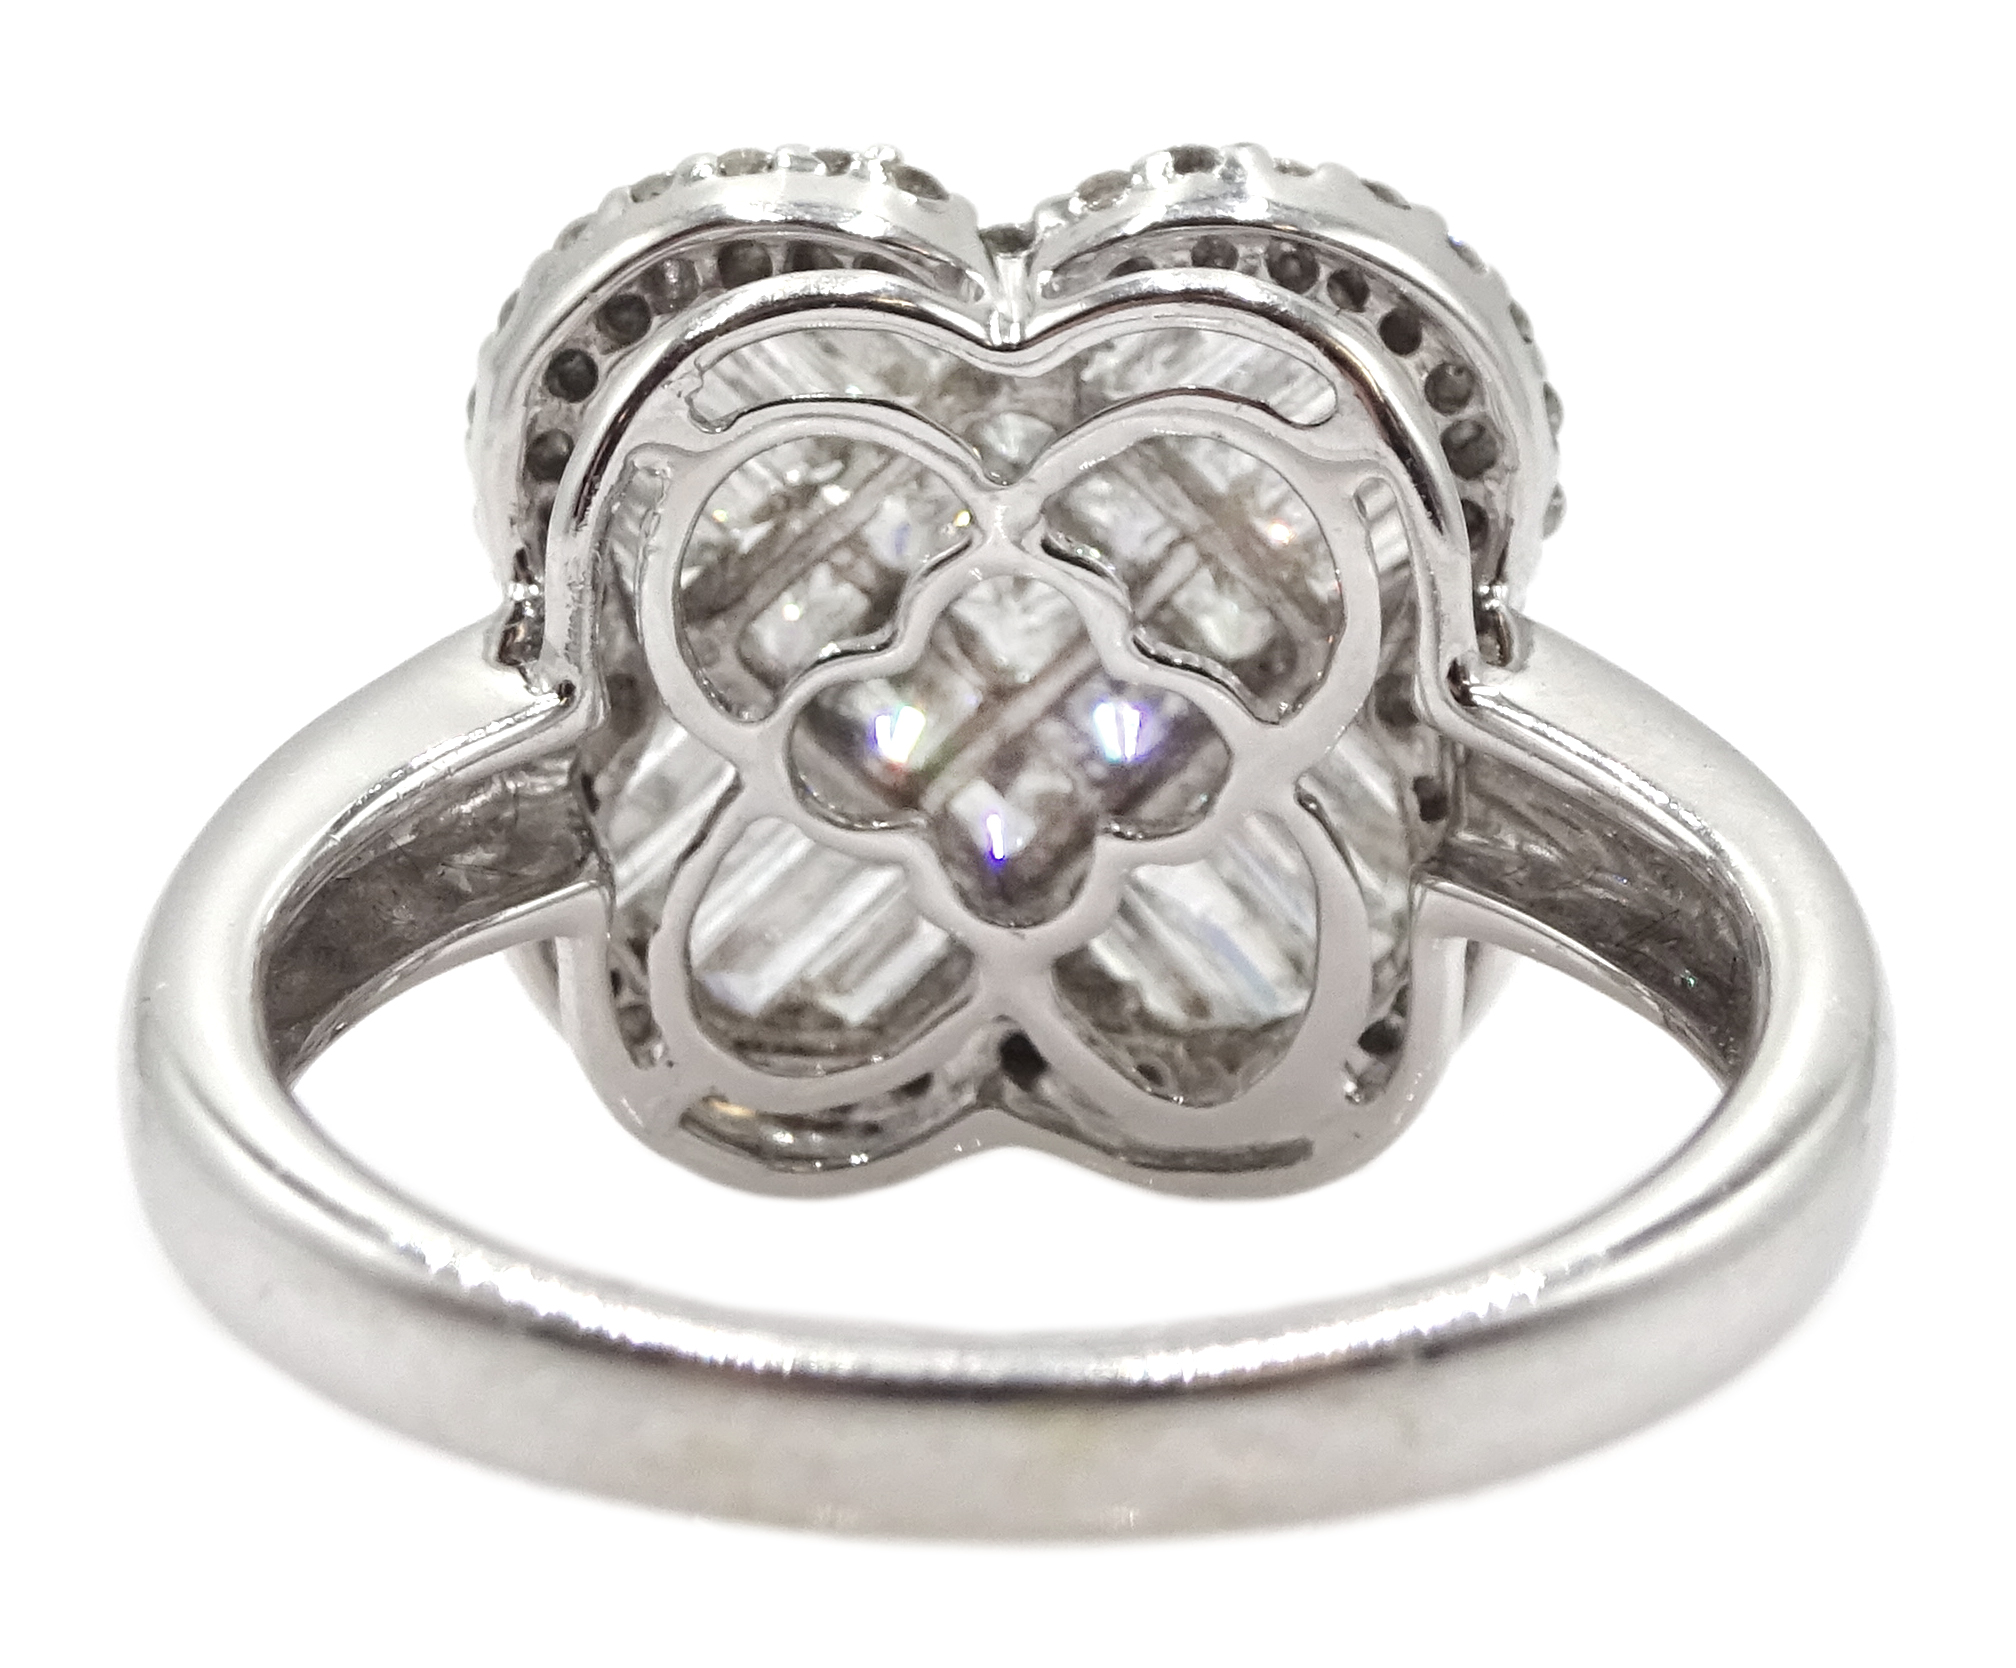 18ct white gold and diamond cluster ring, diamond total weight approx 1.25 carat, free UK mainland - Image 6 of 6